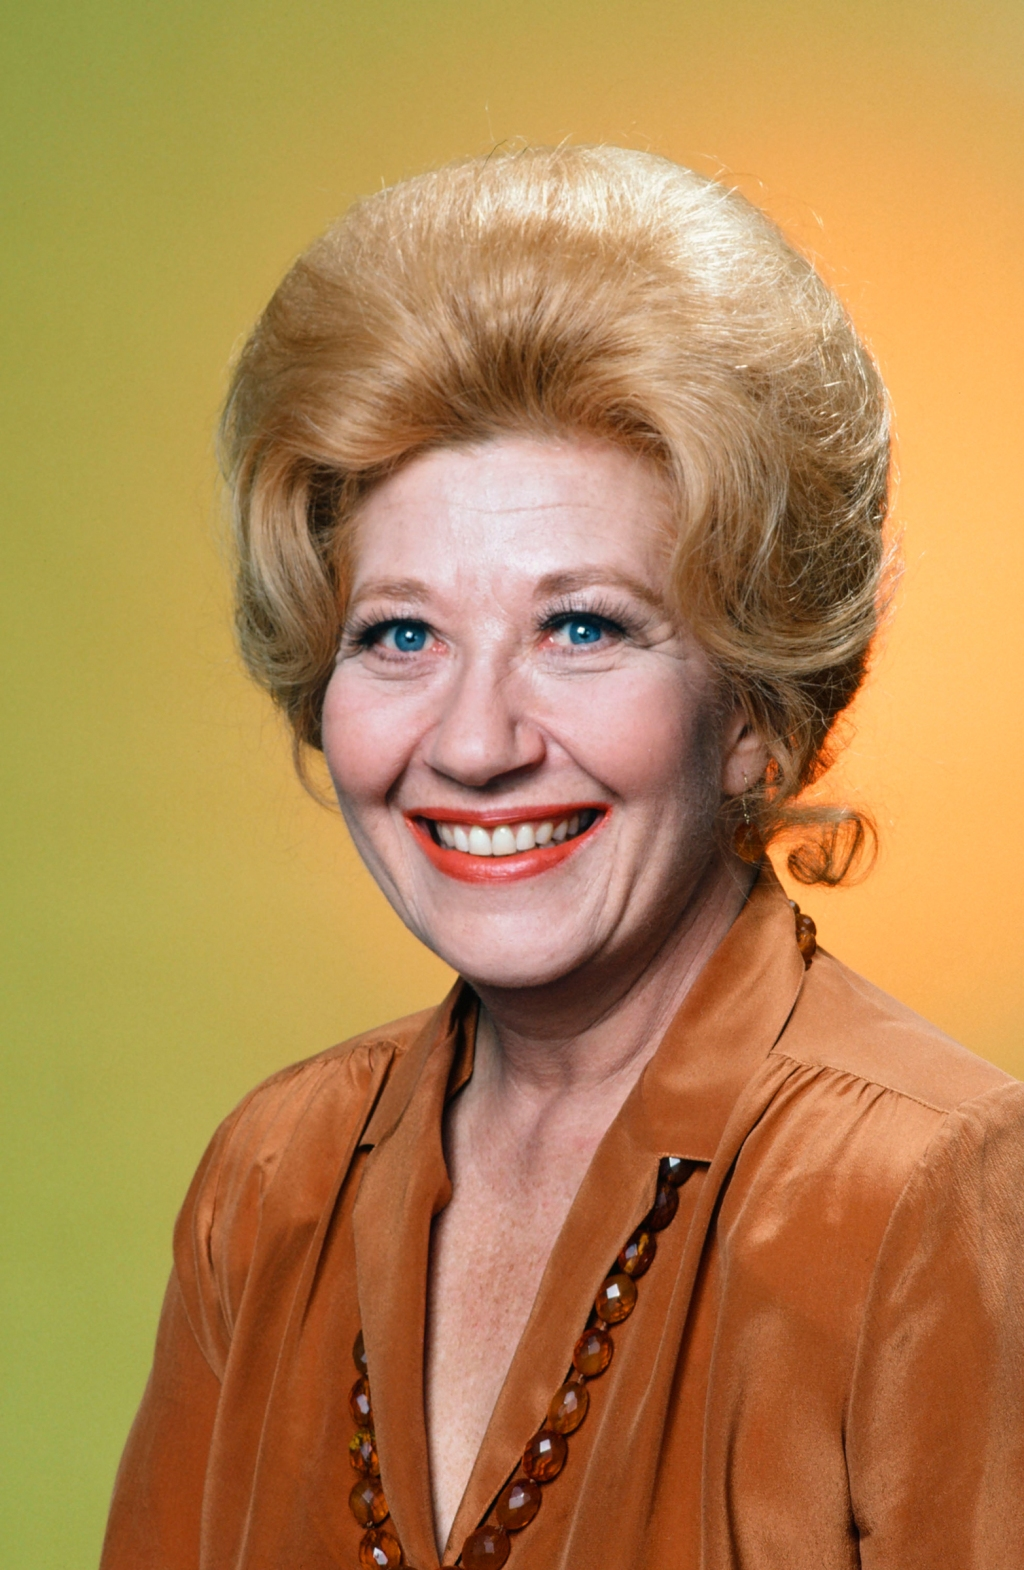 Charlotte Rae, the Tony- and Emmy-nominated actress best known for her recurring role as Edna Garrett on Diff'rent Strokes and The Facts of Life, died in August at age 92.